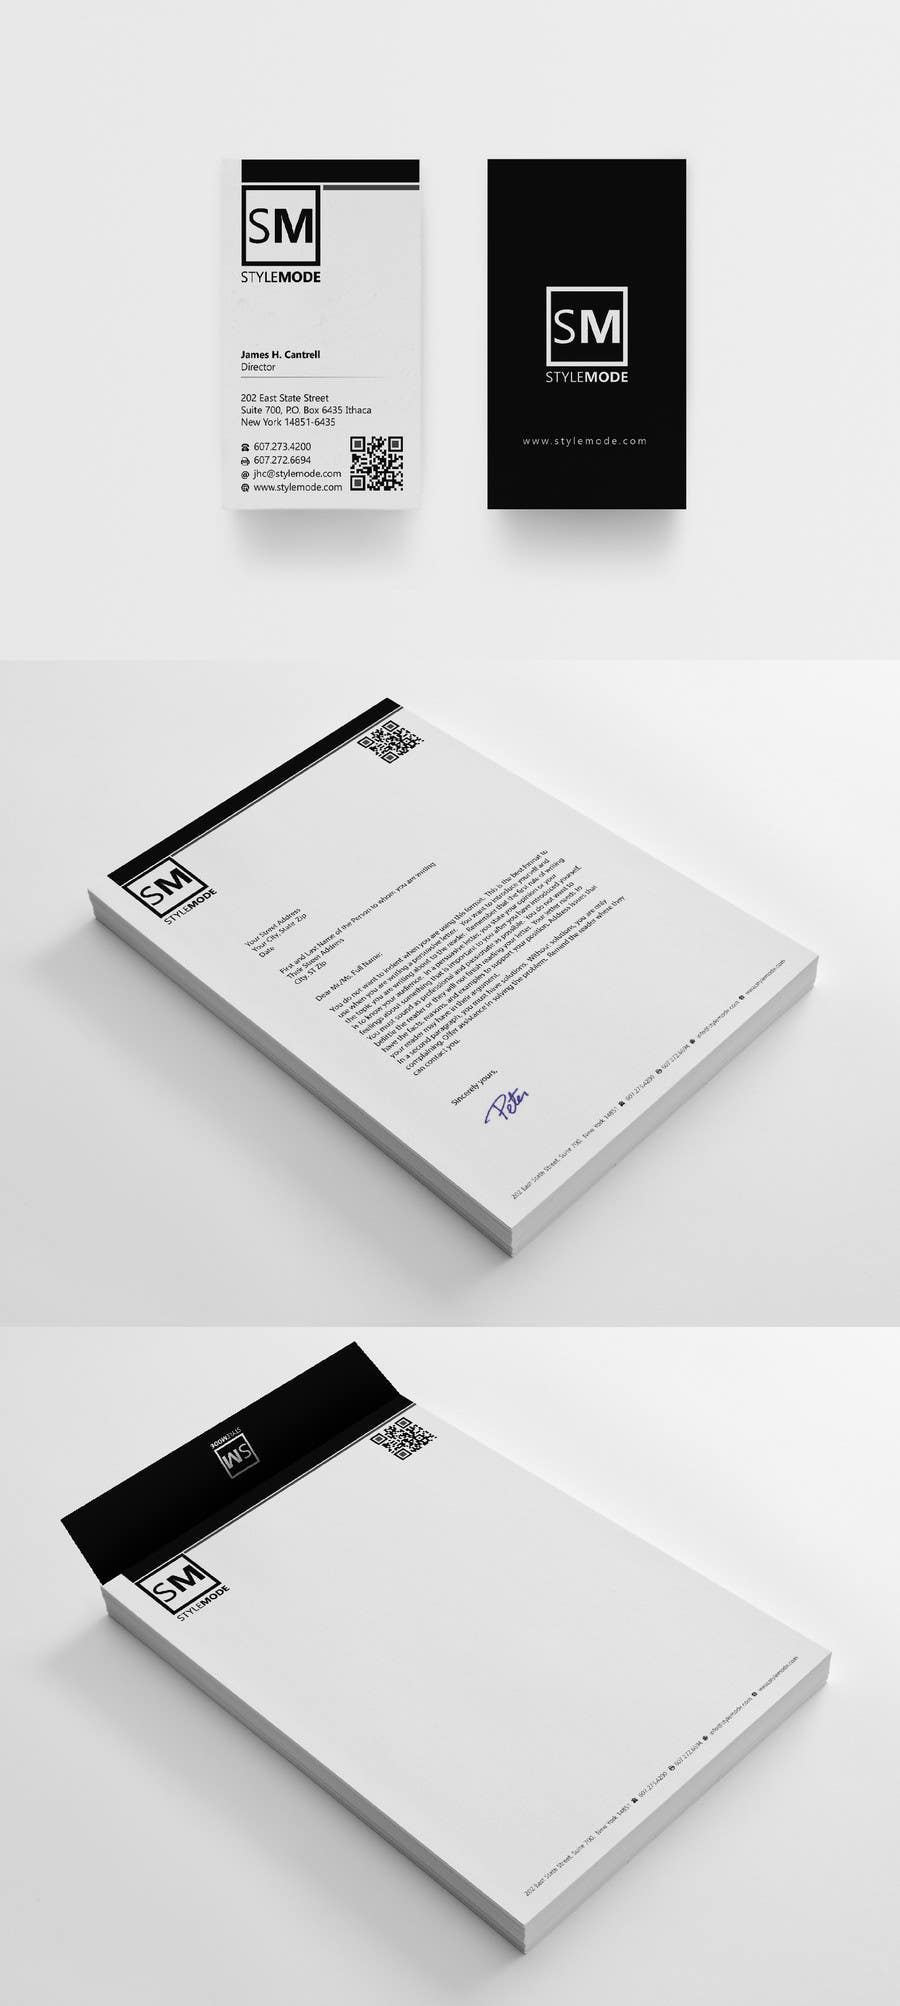 #93 for Stationery Design for STYLEMODE, a online clothing and accessories retailer by Brandwar